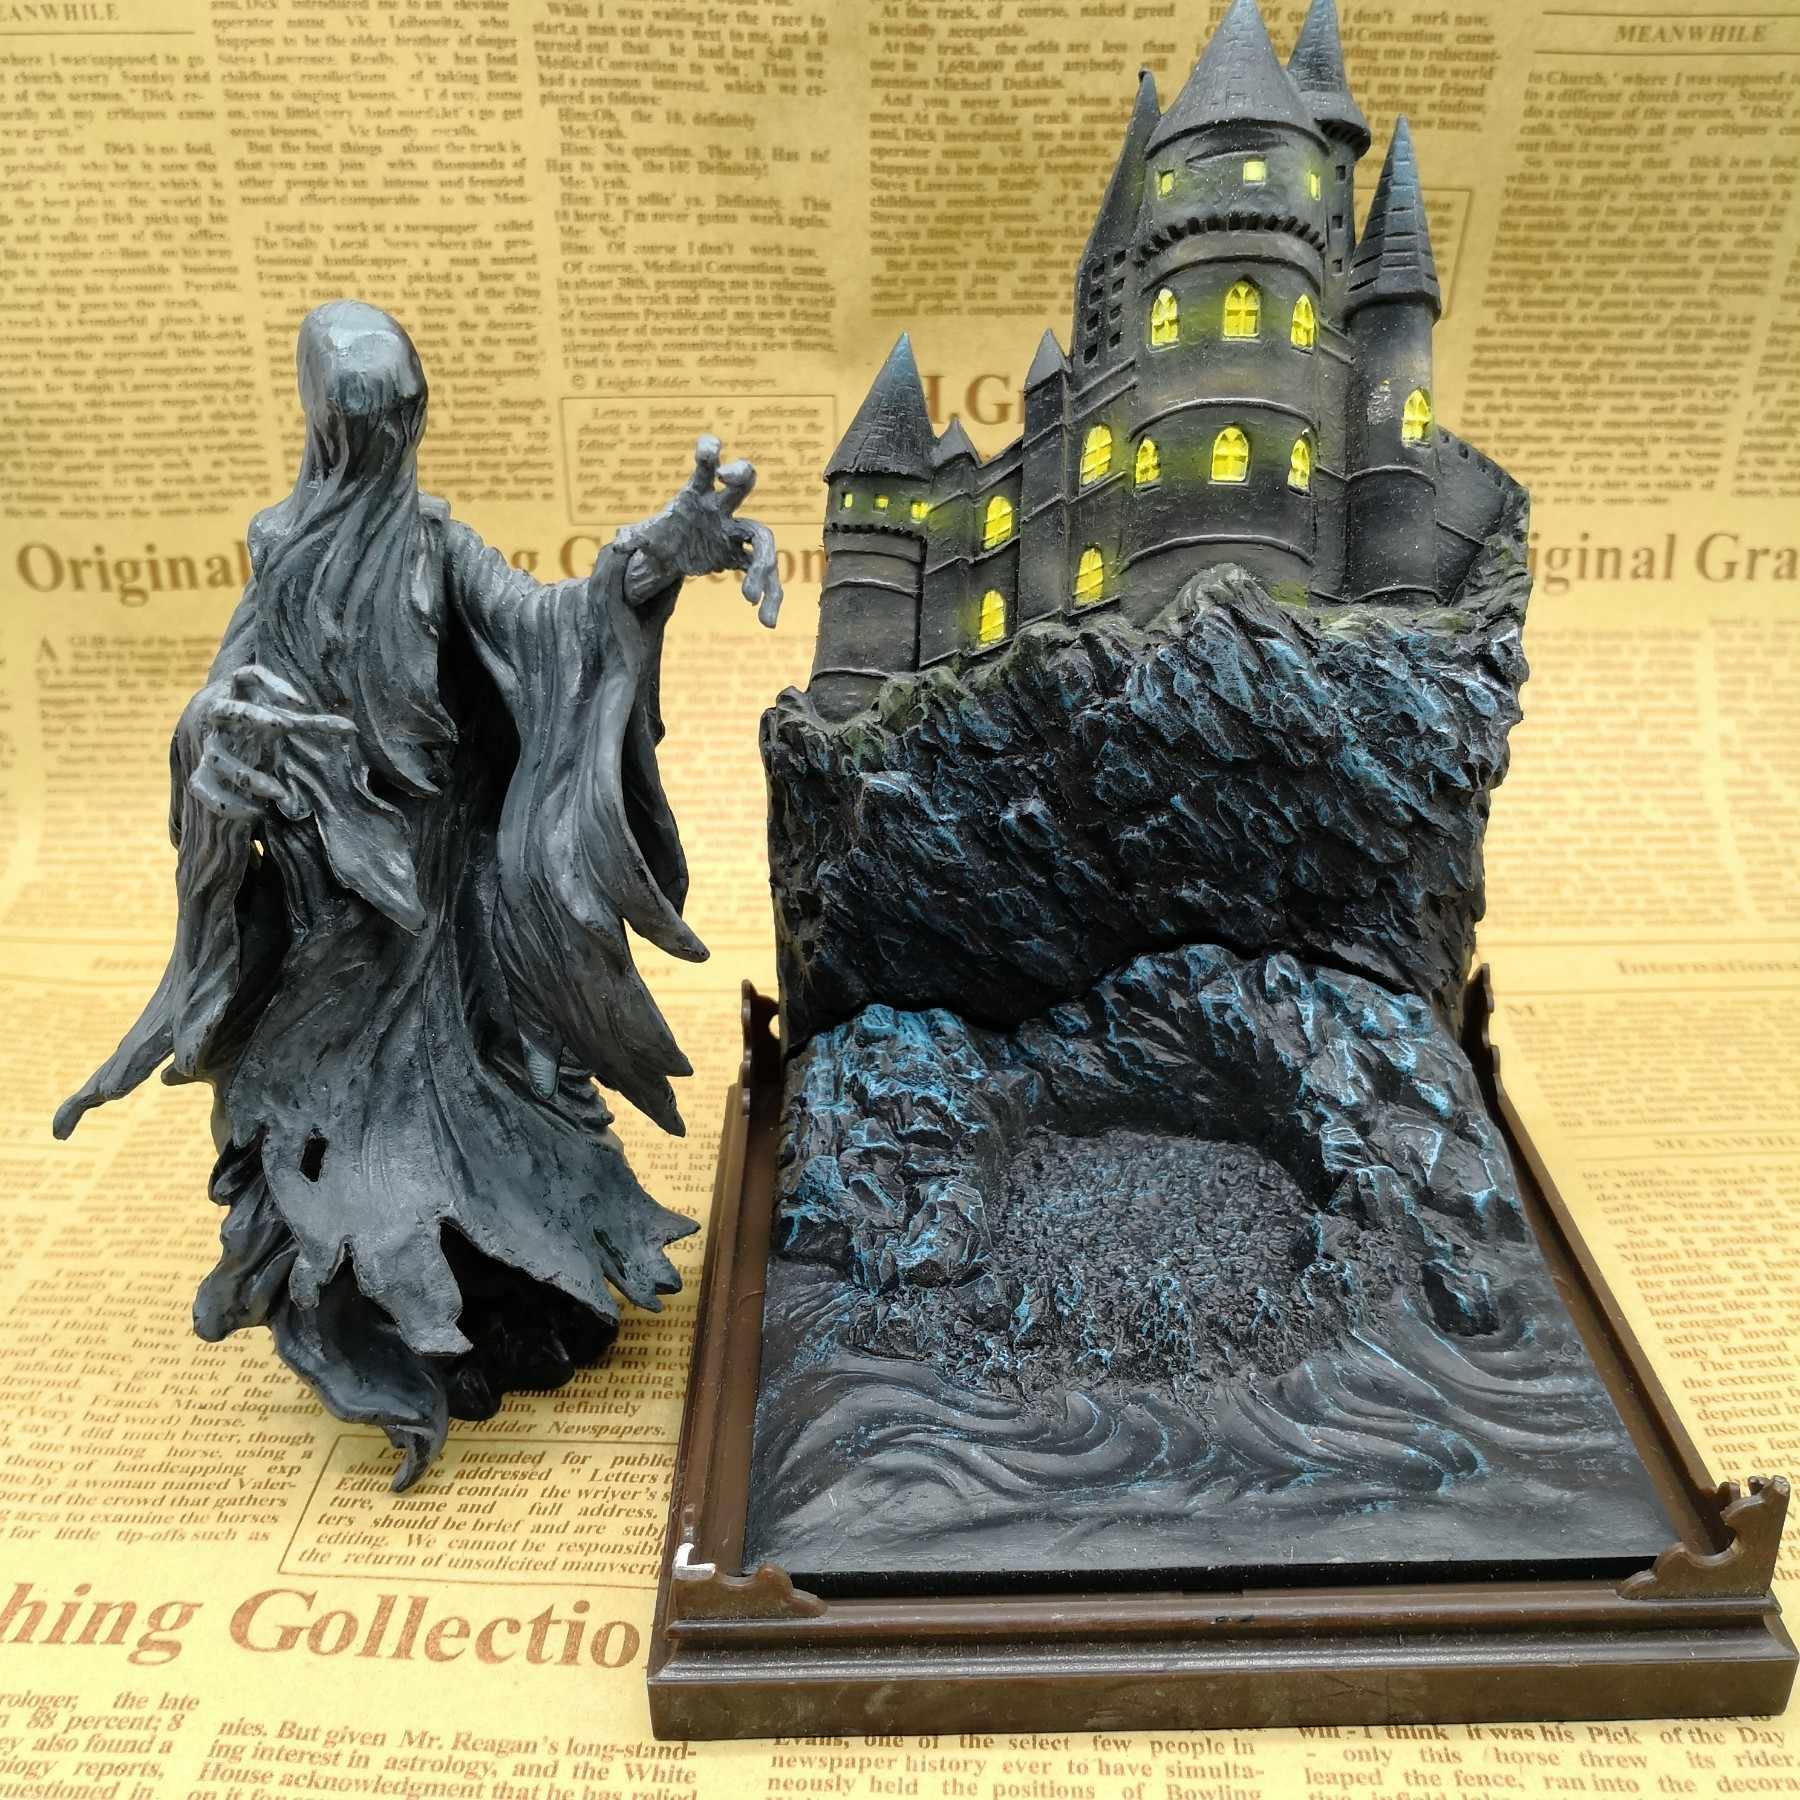 Harry Makhluk Ajaib Dementor 6-Inch Boneka Action Figure Patung Pack OPP Tas Model S155